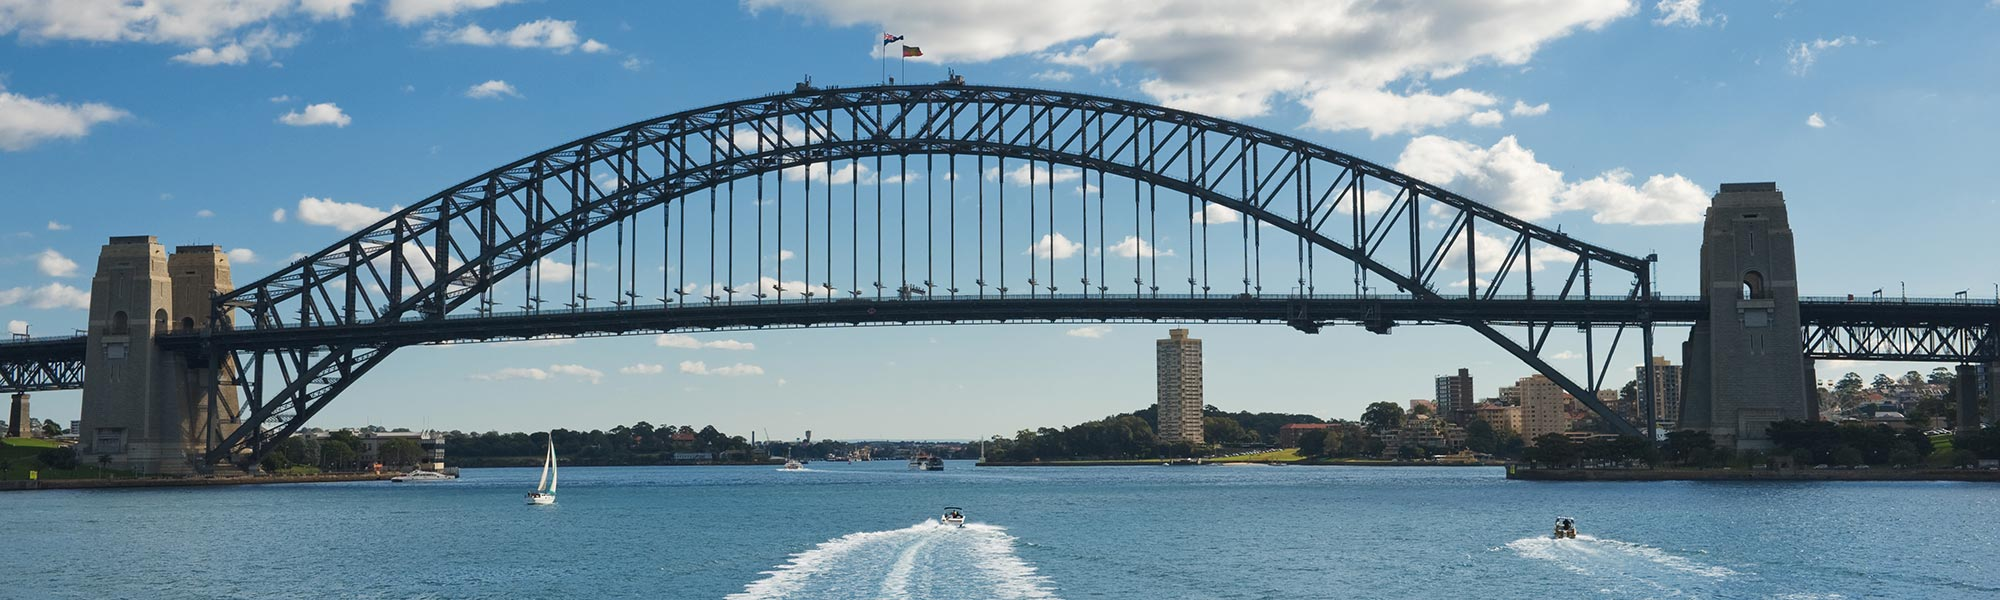 harbour-bridge-large-banner.jpg